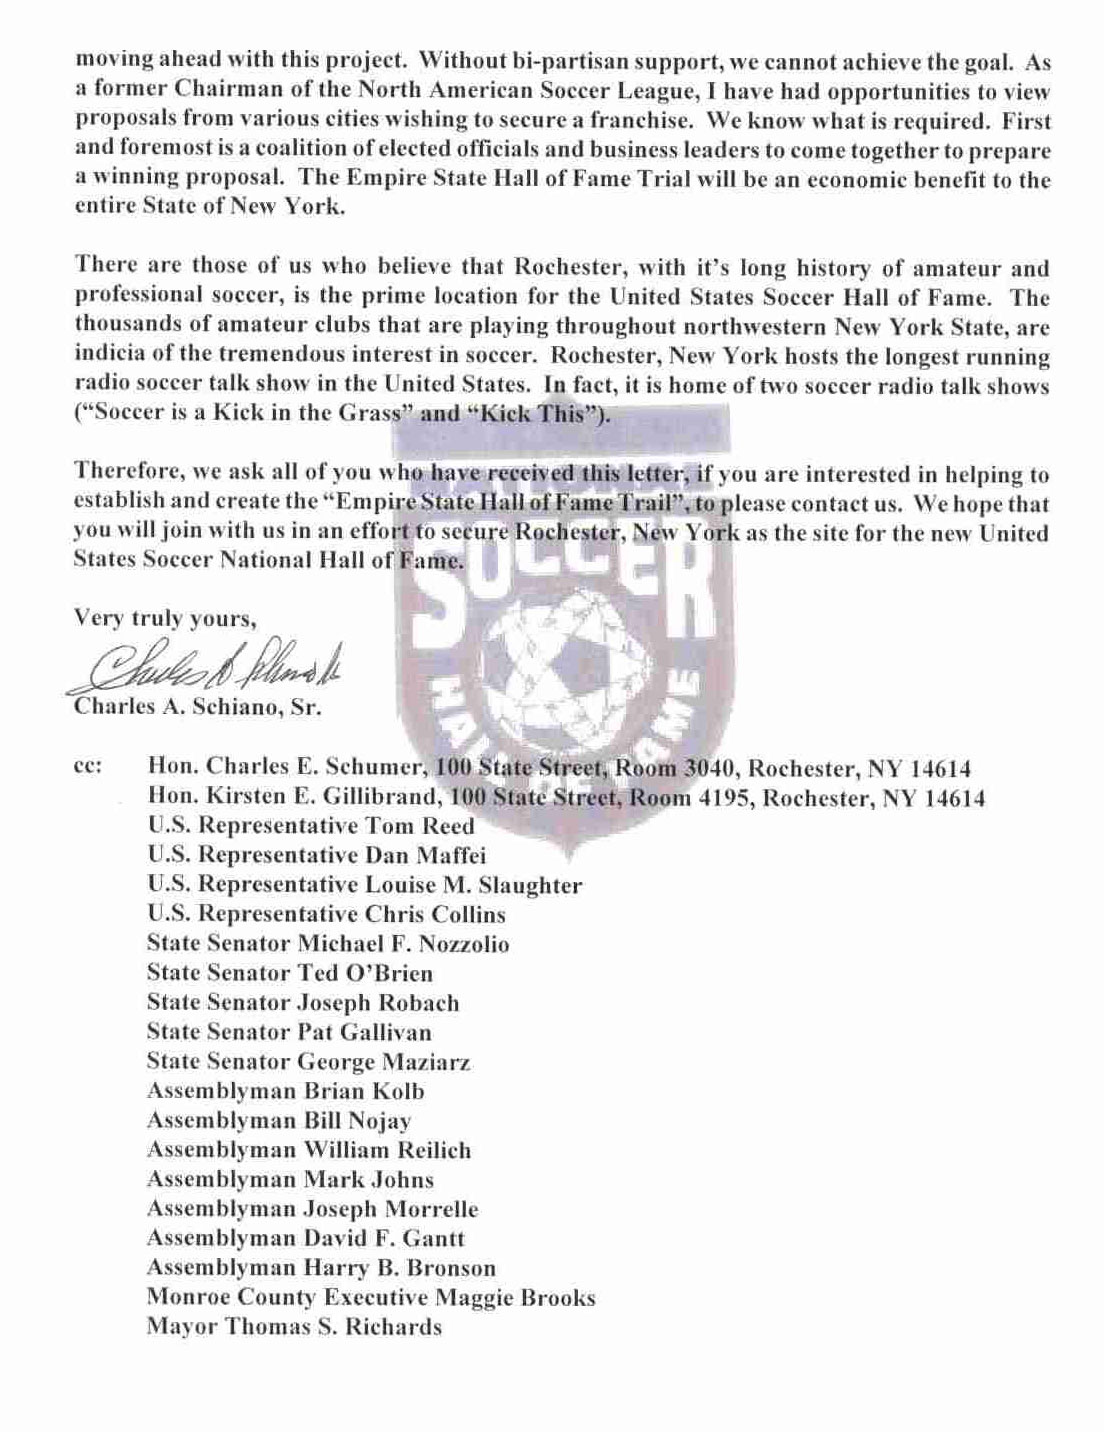 Al Schneider's letter to Governor Cuomo, RE: US Soccer Hall of Fame.